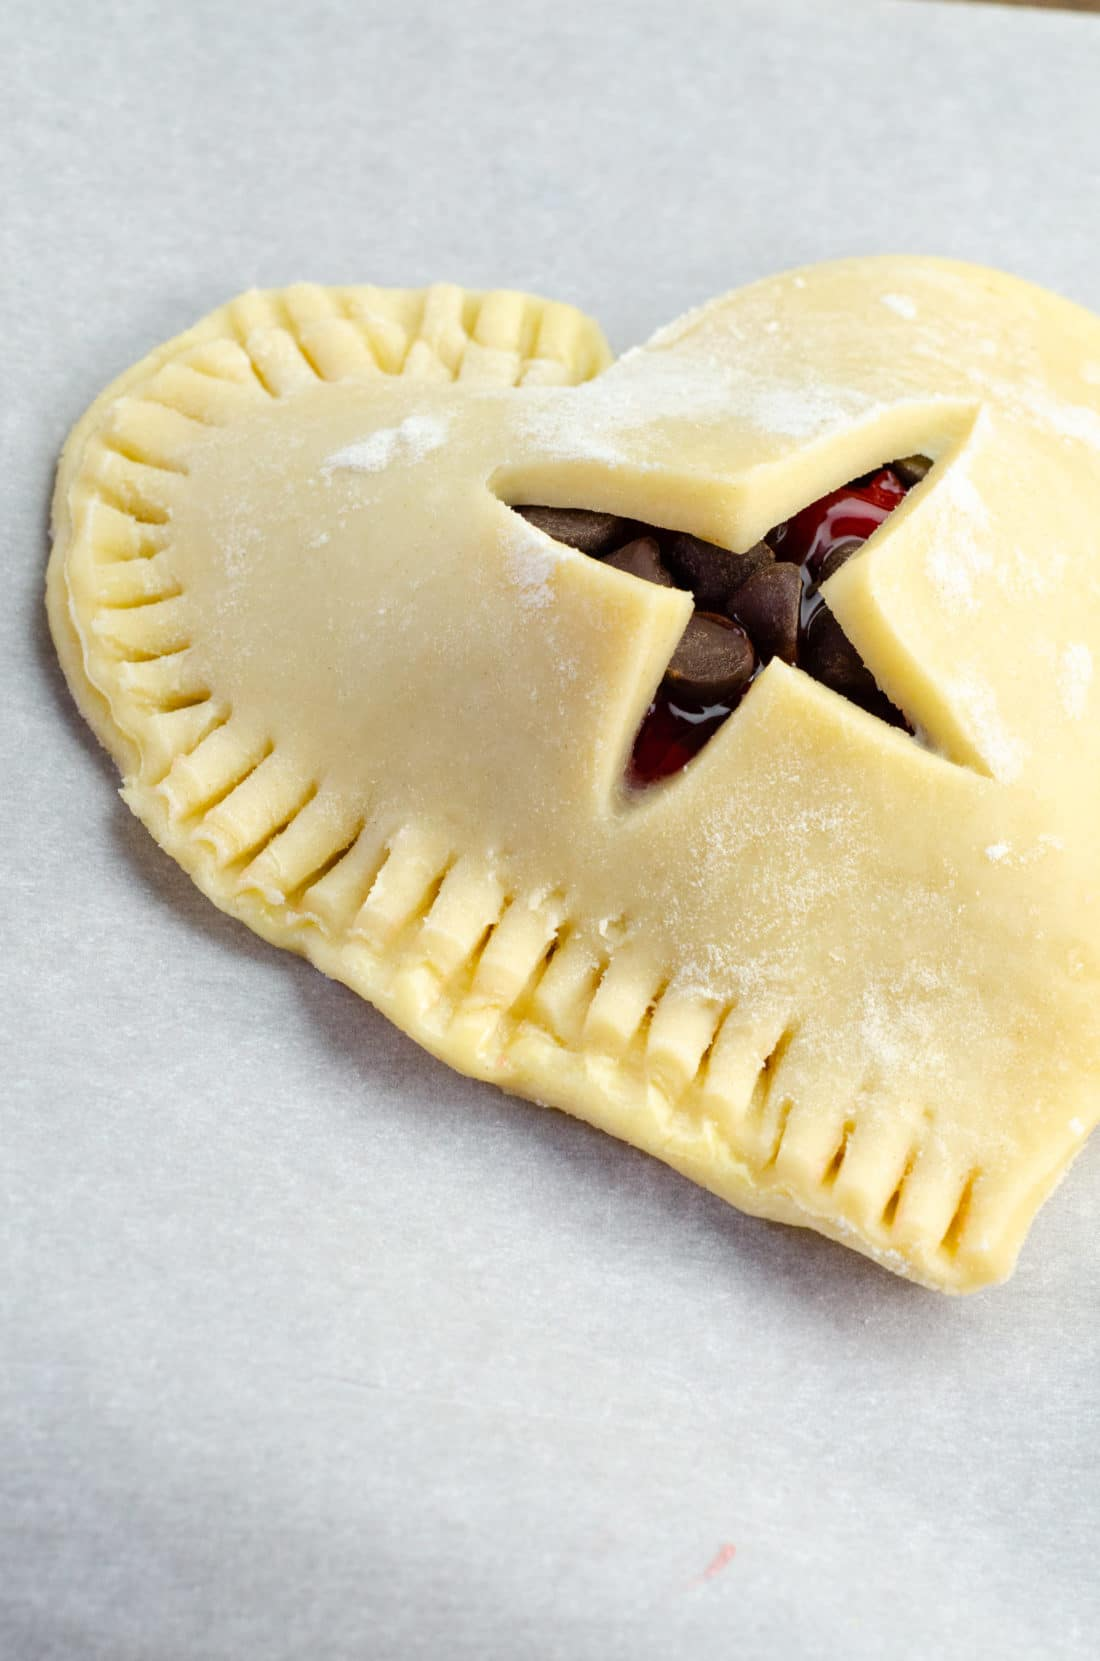 Chocolate Cherry Hand Pies Pie Crust . Say I heart you to someone special this Valentine's Day with a delicious homemade treat. Try my super easy to make Chocolate Cherry Hand Pies which include a from scratch buttery flaky pie crust.